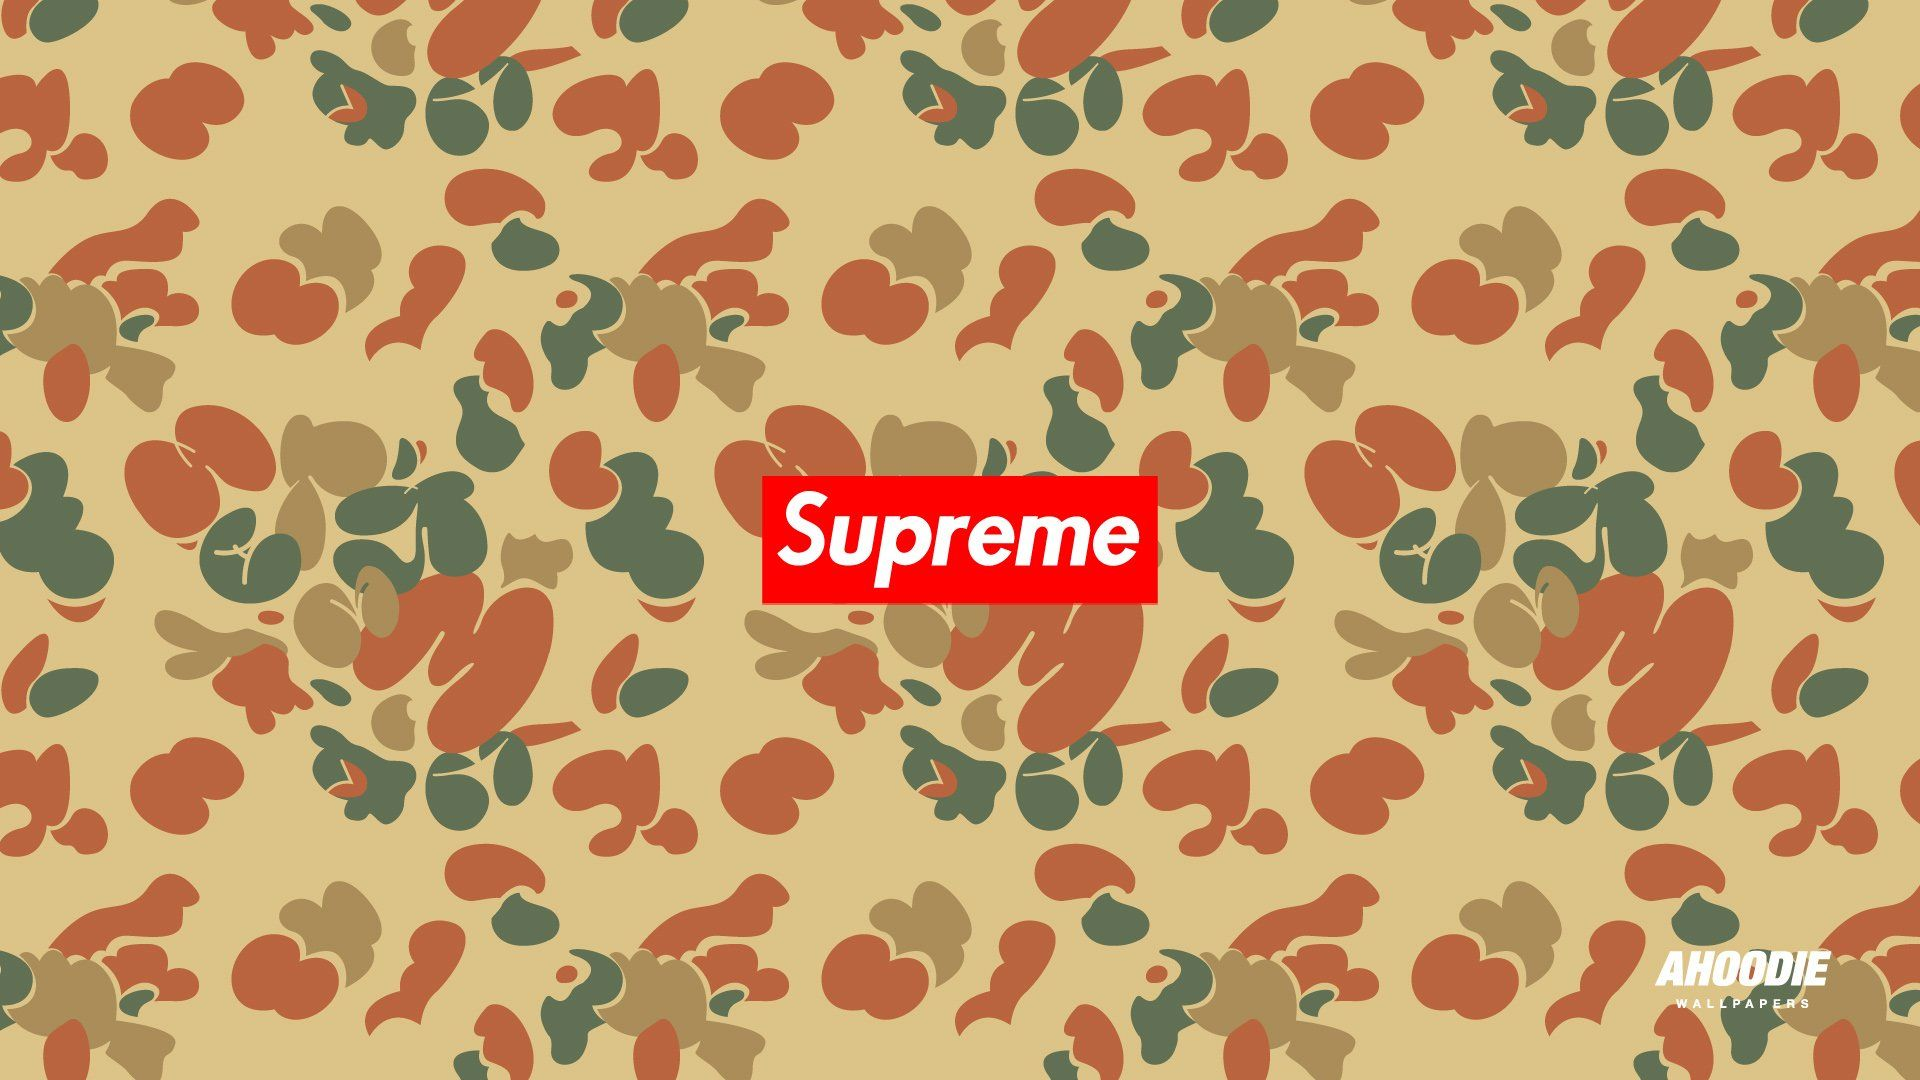 Supreme Wallpaper 71 Wallpapers 3d Wallpapers Supreme Wallpaper Supreme Iphone Wallpaper Iphone Wallpaper